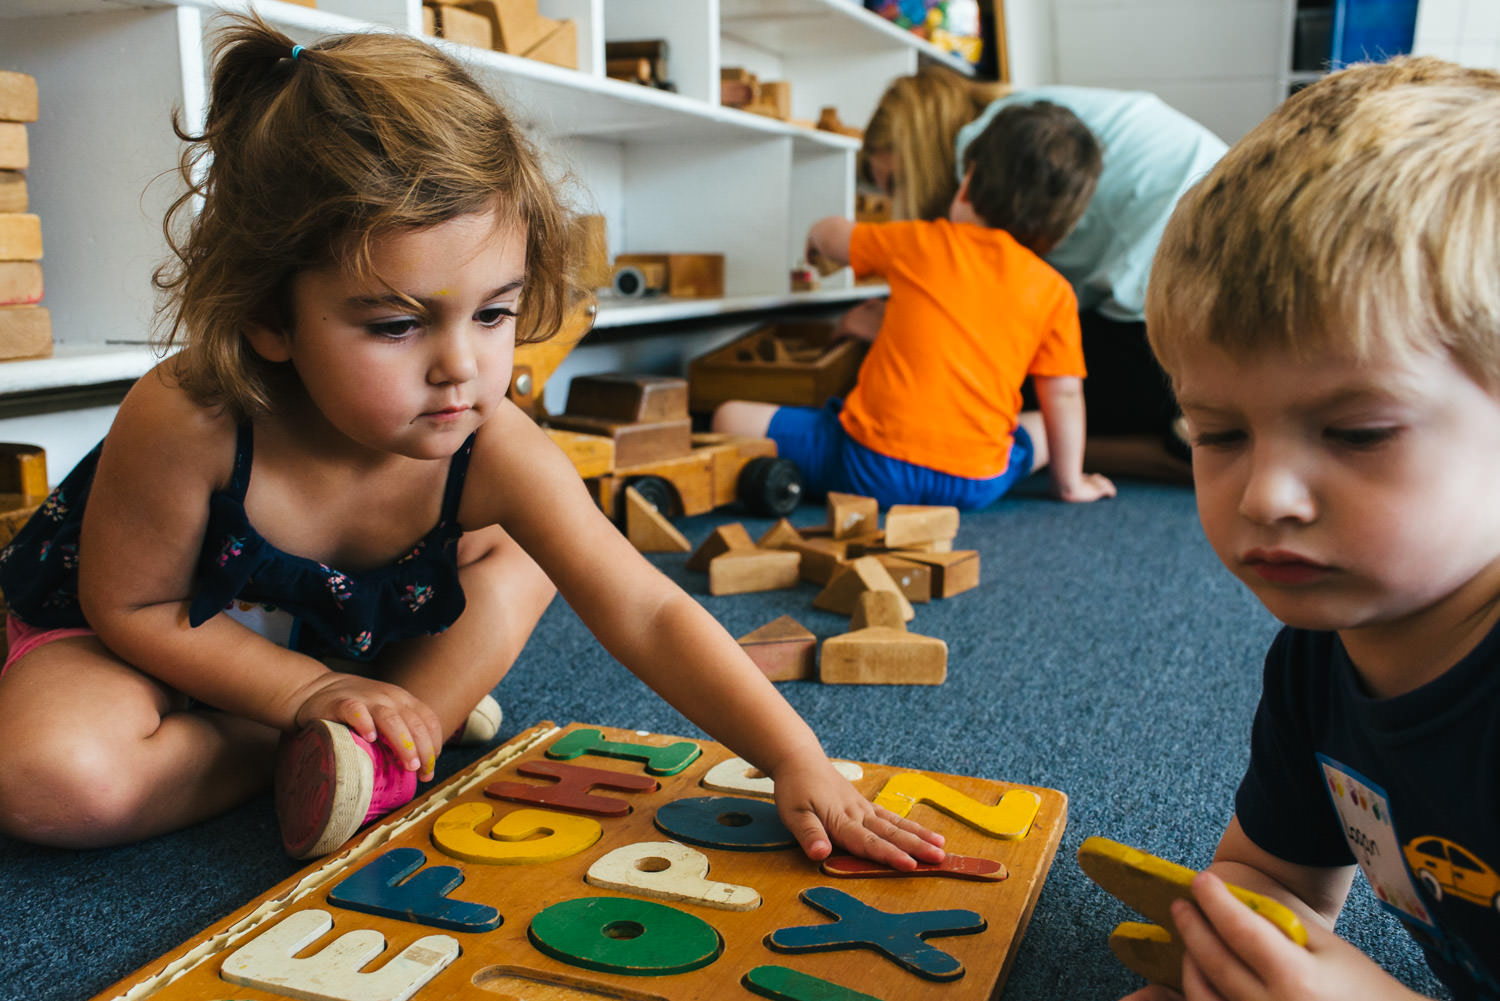 Children play with a puzzle at school.